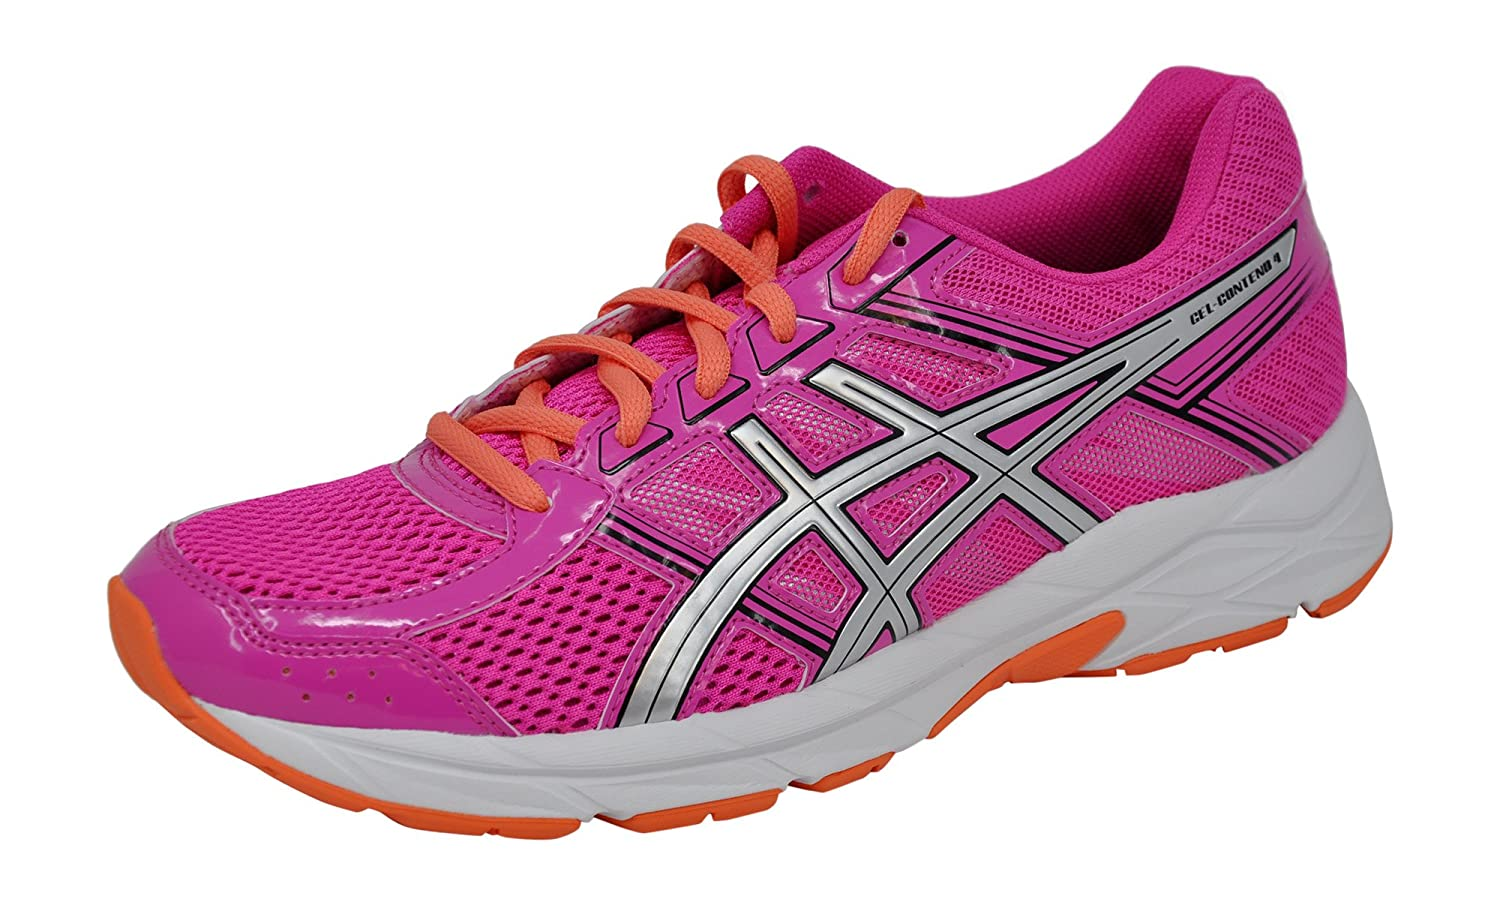 ASICS Women's Gel-Contend 4 Running Shoe B077XQ3T2W 7 B(M) US|Pink Glow/Silver/Black